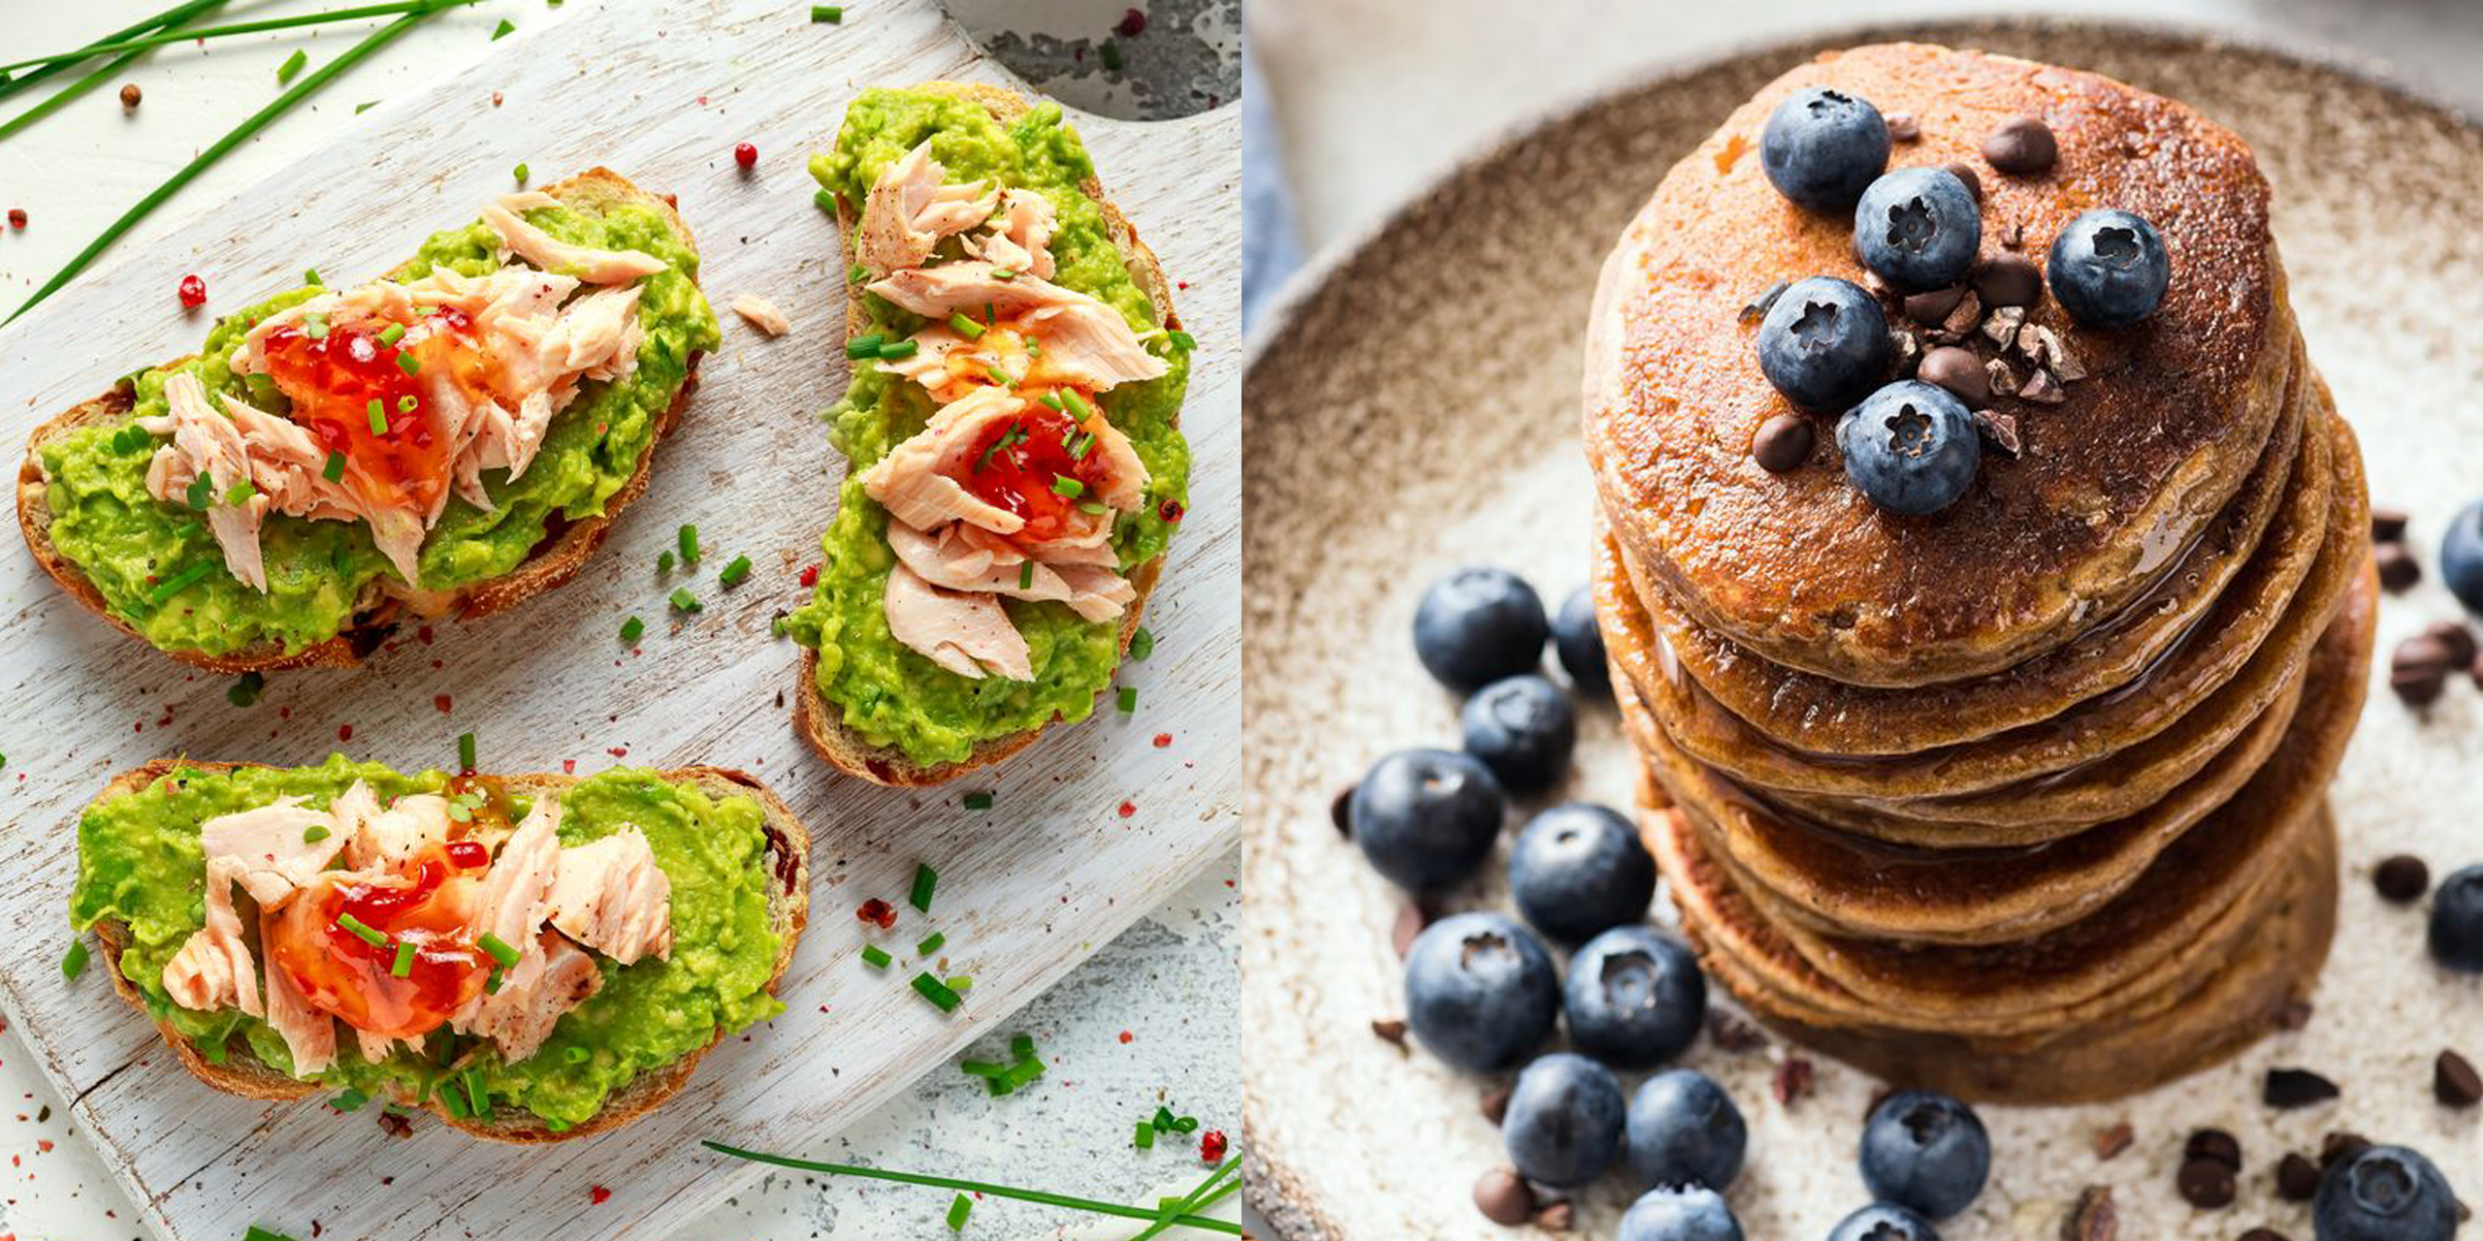 10 Low-Calorie Breakfasts to Keep You Full, According to Dietitians - Breakfast Recipes Low Calorie